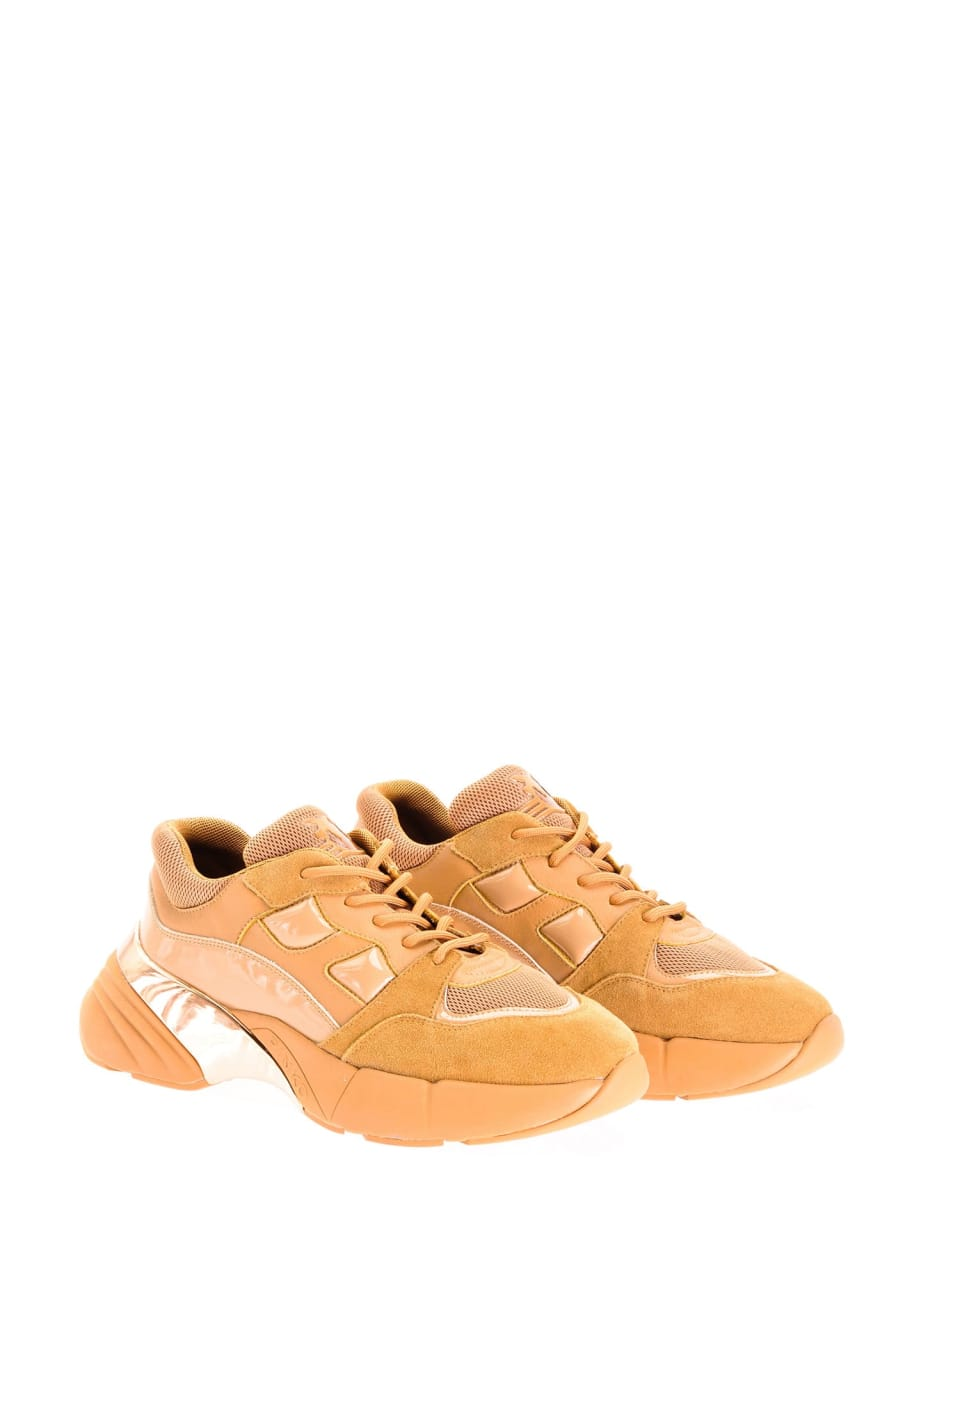 Shoes To Rock Caramel sneakers